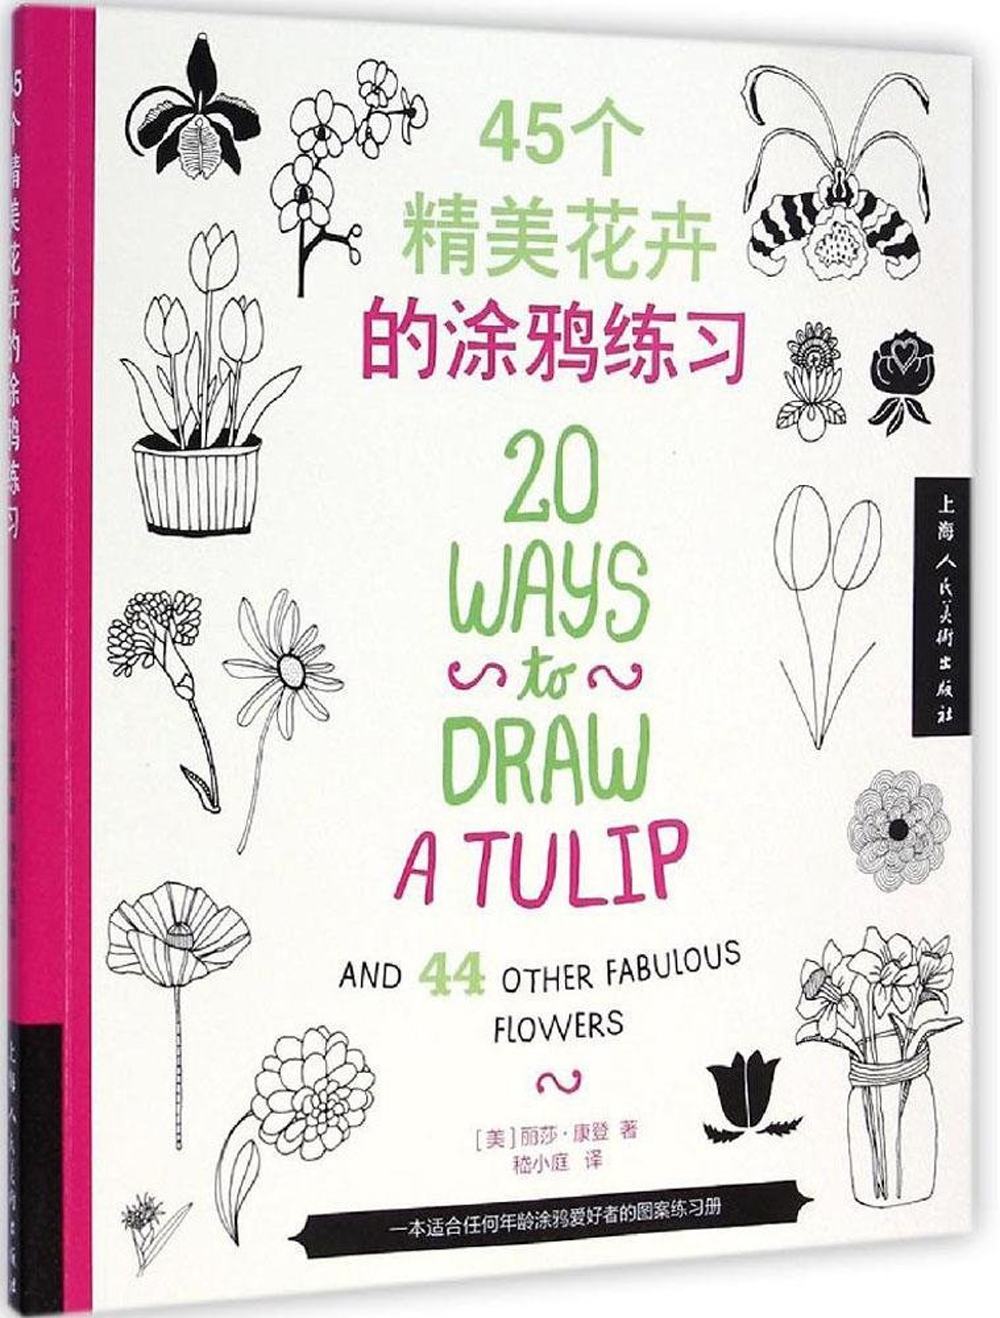 20 Ways To Draw Flowers / Chinese Coloring Book For Children Adult